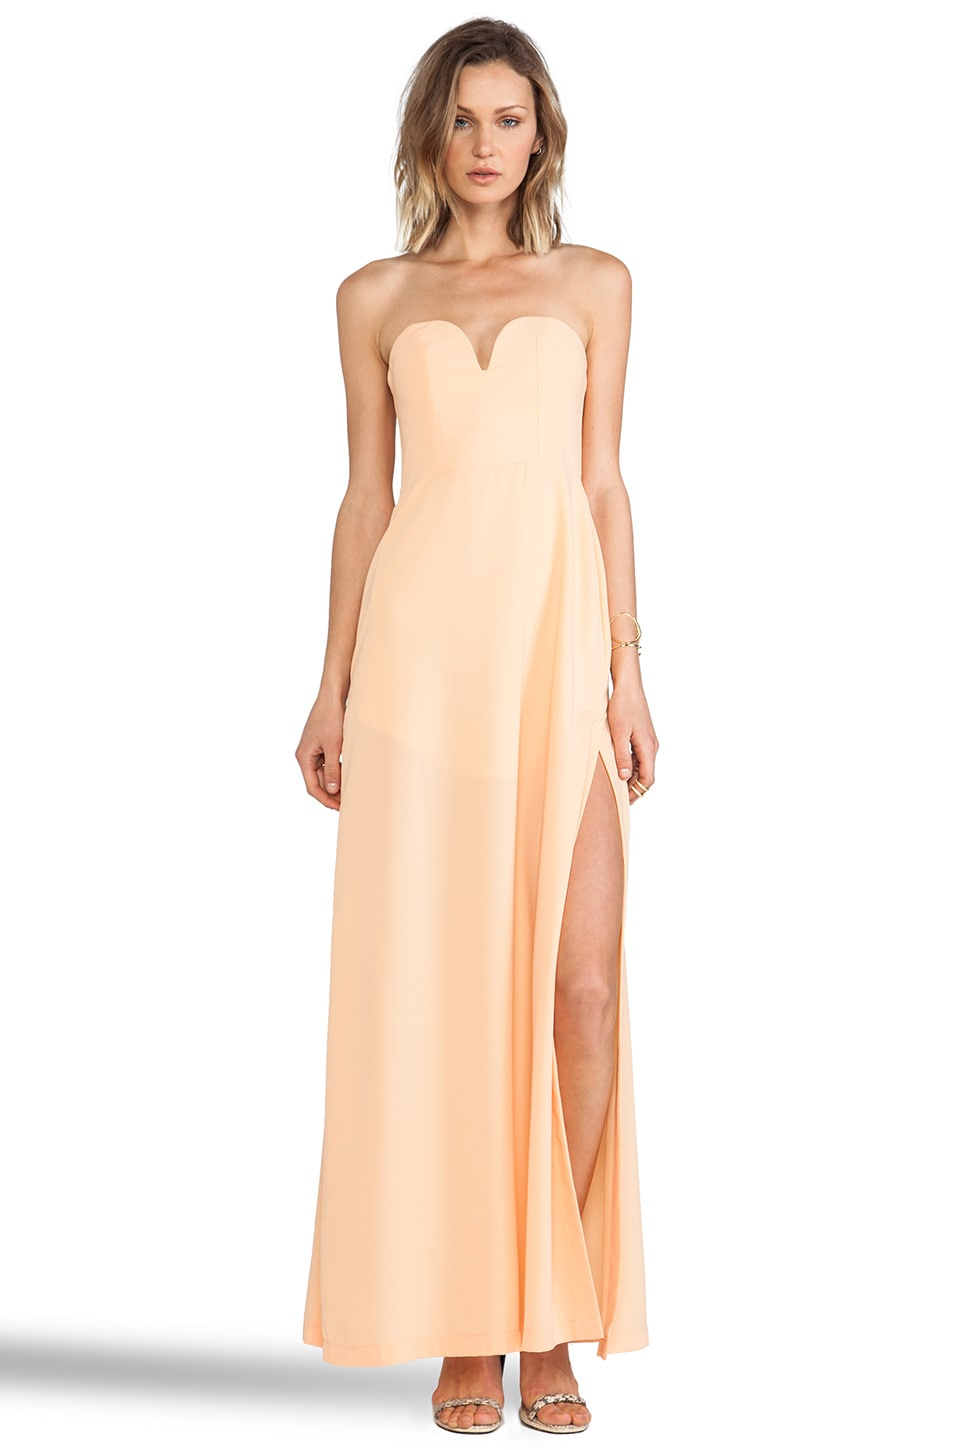 Shona Joy The Wanderer Maxi Dress in Apricot